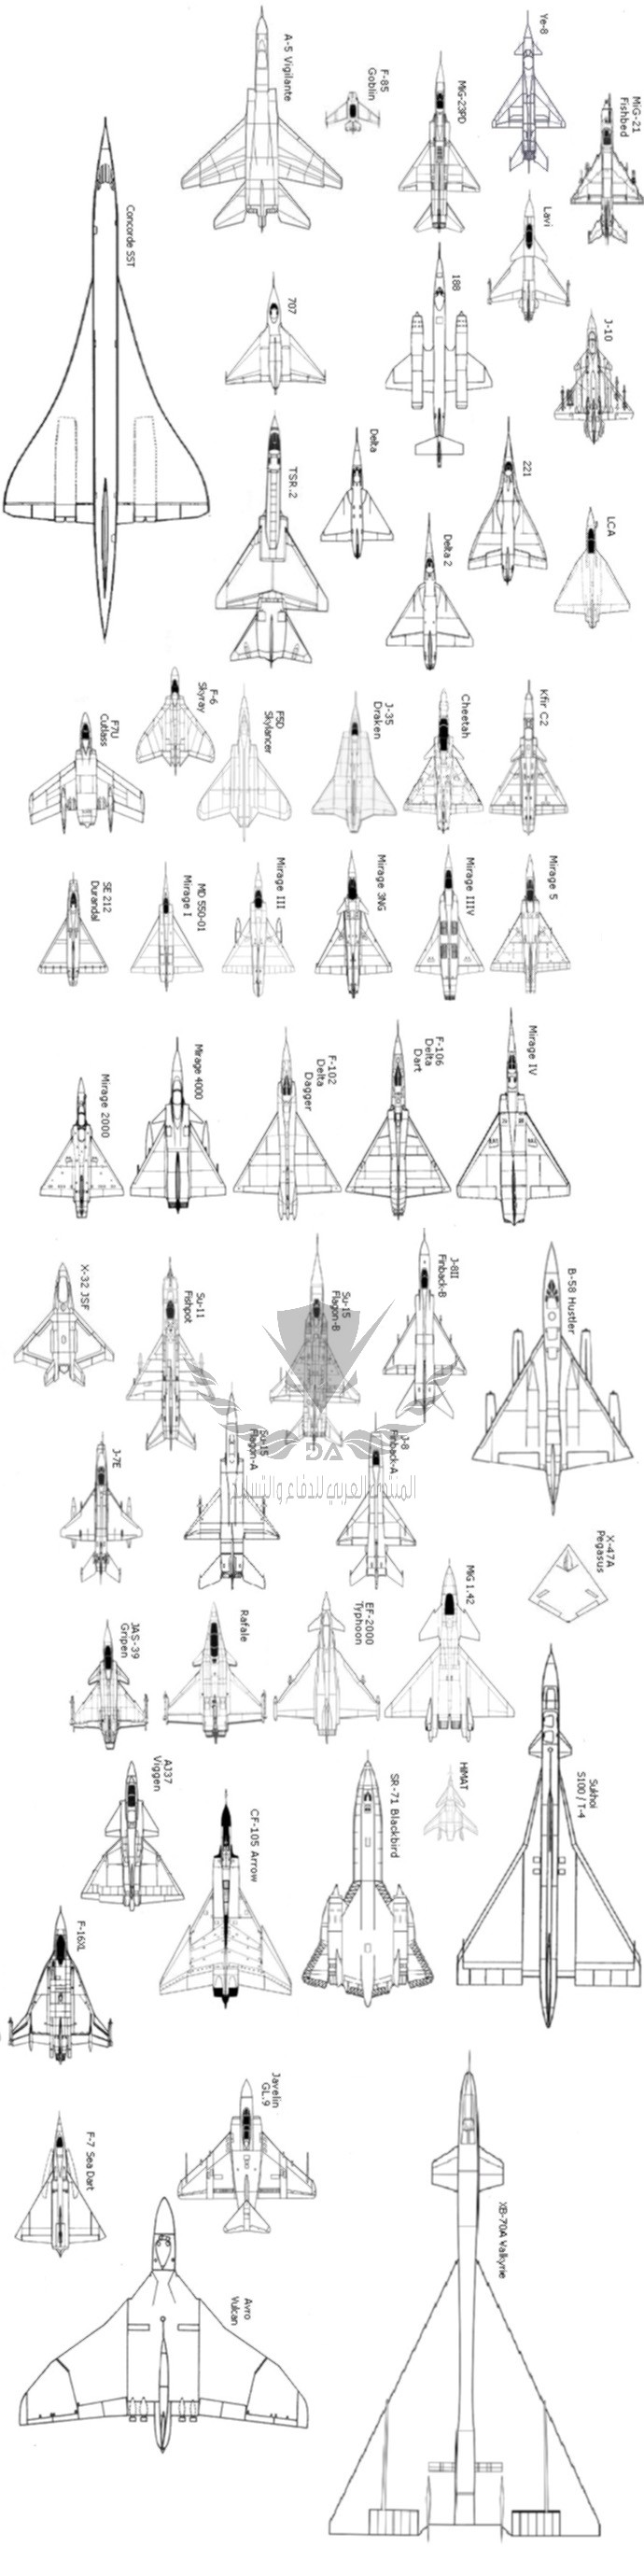 The-delta-wing-and-its-variants.jpg